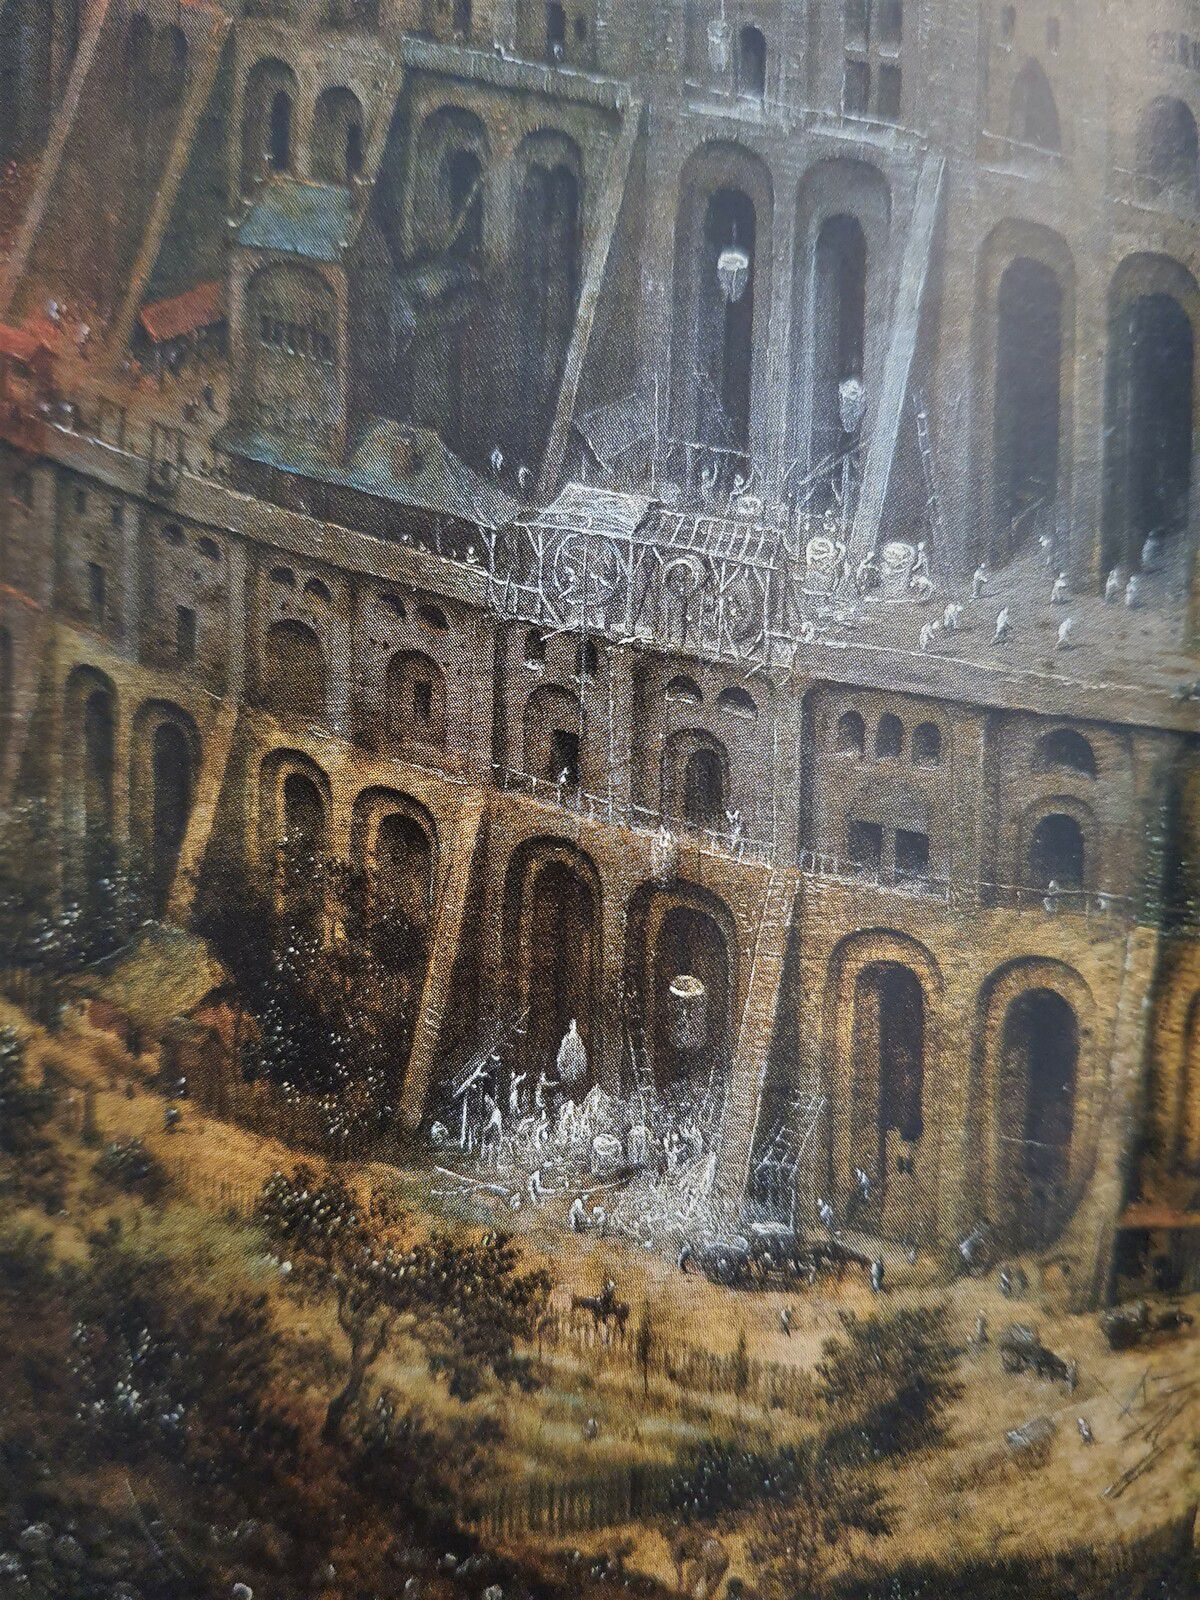 Bruegel par le détail -  Manfred Sellink - Editions Hazan - Tour de Babel